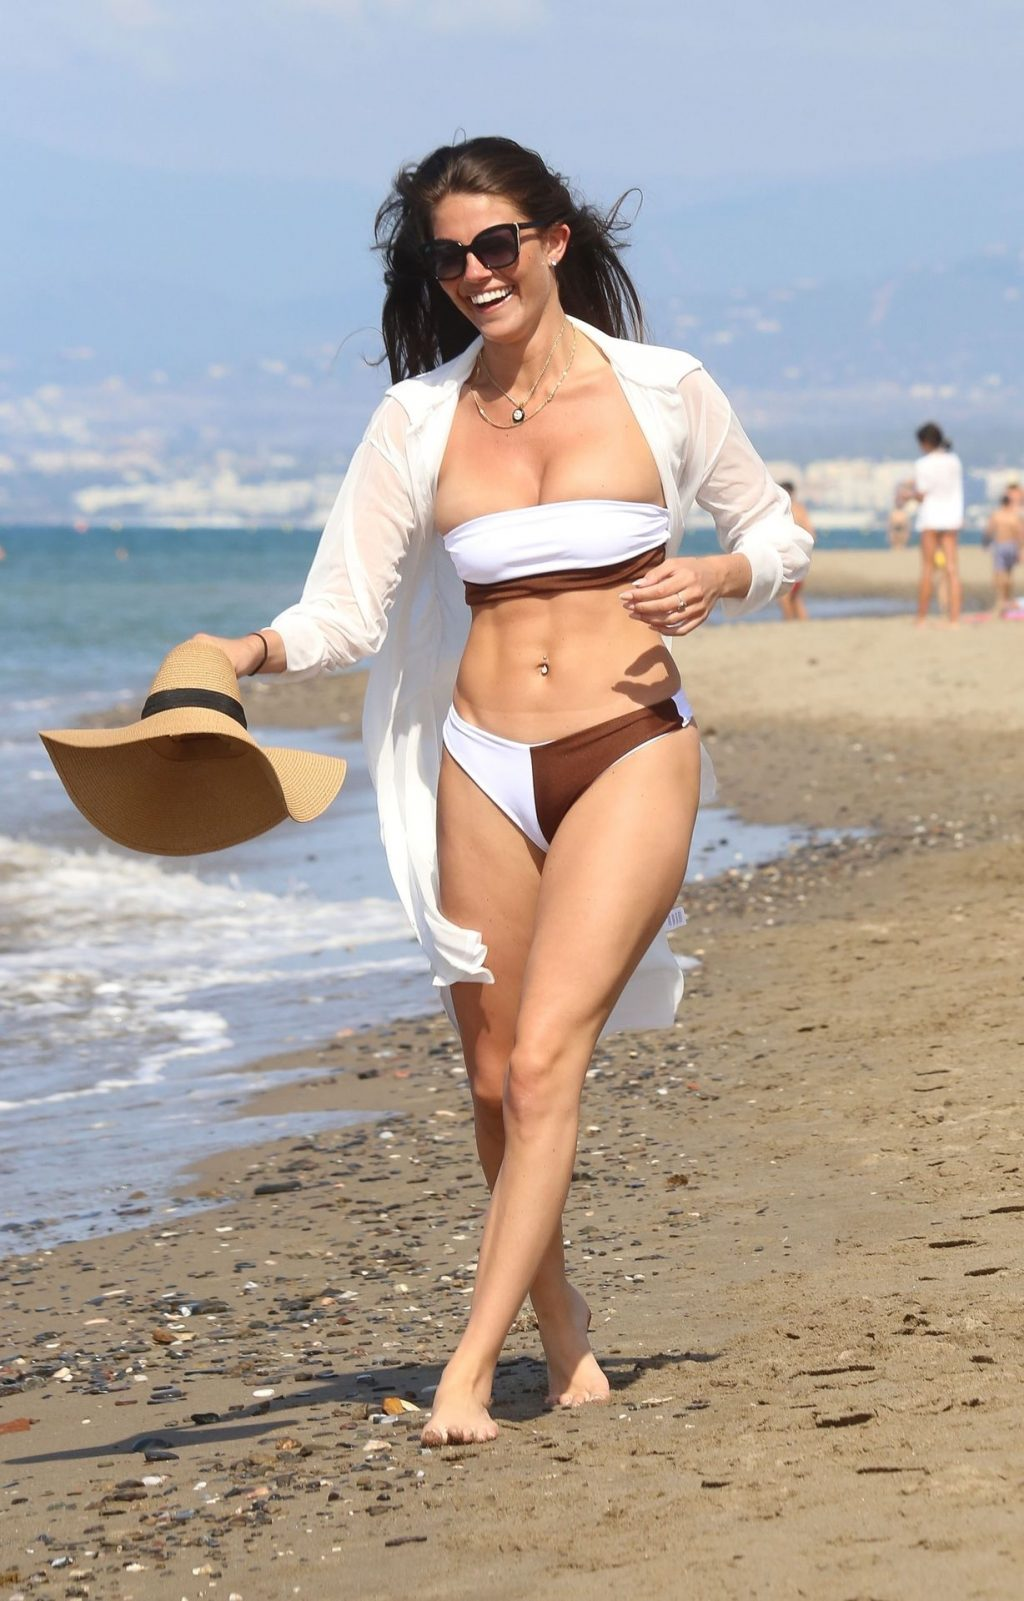 Rebecca Gormley & Biggs Chris Are Spotted on the Beaches of Marbella (52 Photos)